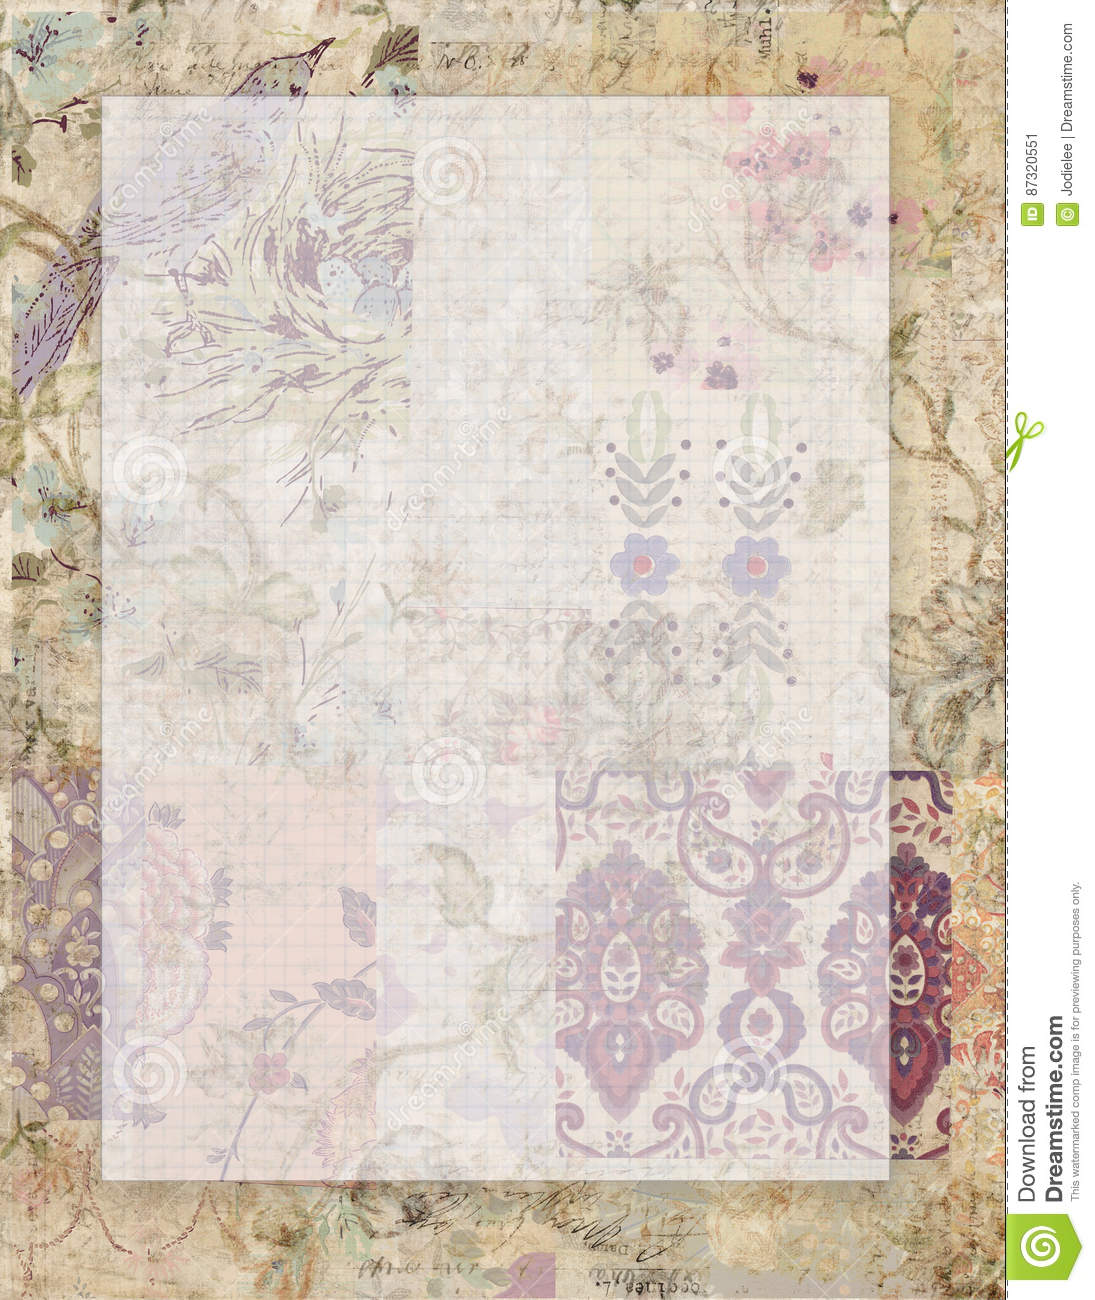 printable vintage grungy shabby chic style floral stationary on